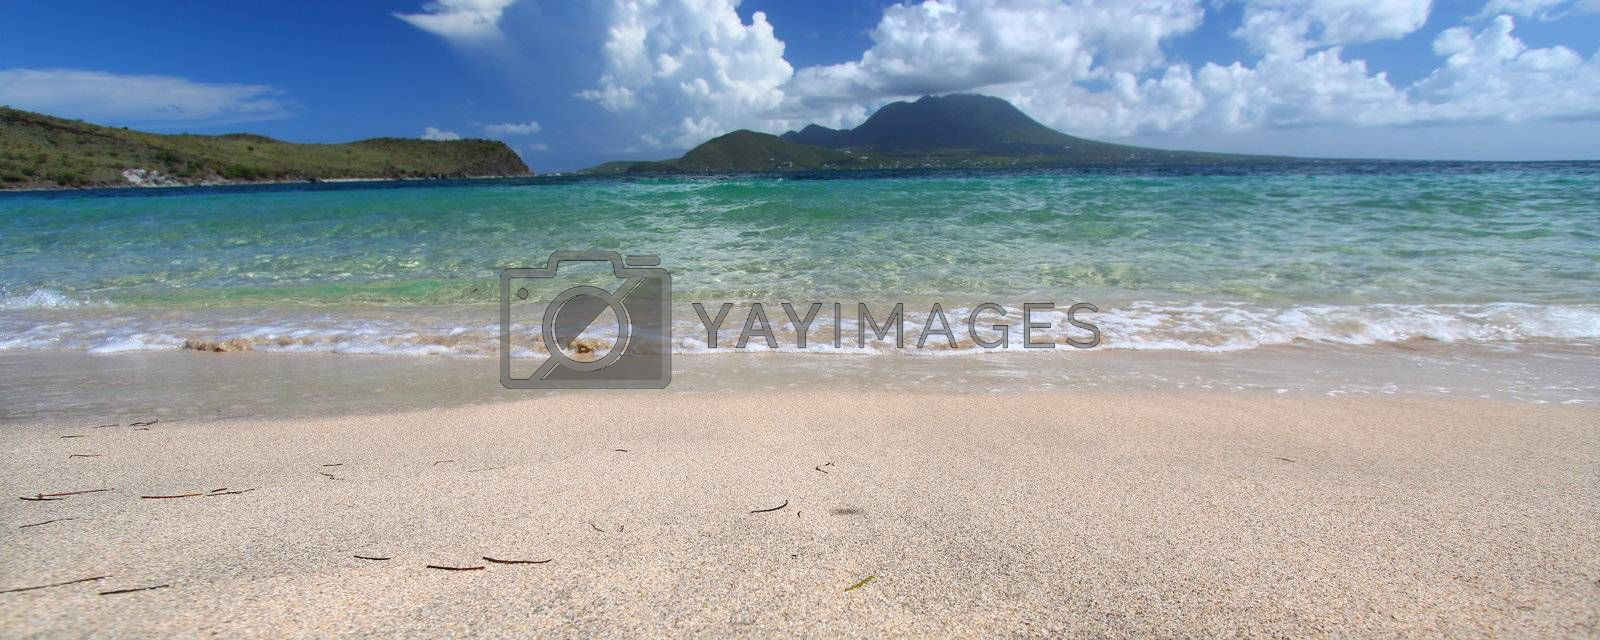 Royalty free image of Beautiful beach on Saint Kitts by Wirepec